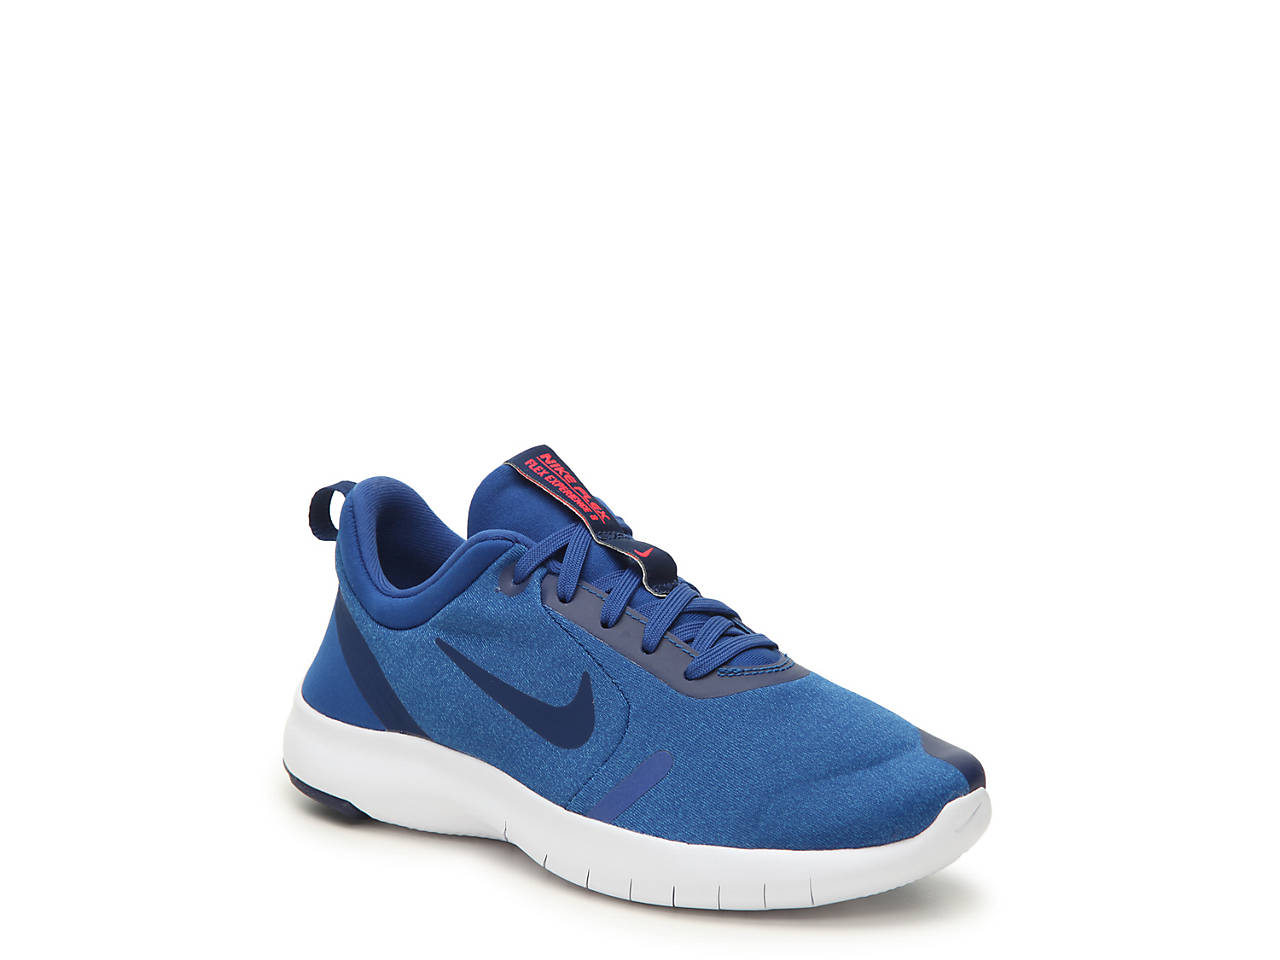 d39252dd7 Nike Flex Experience RN 8 Youth Running Shoe Kids Shoes